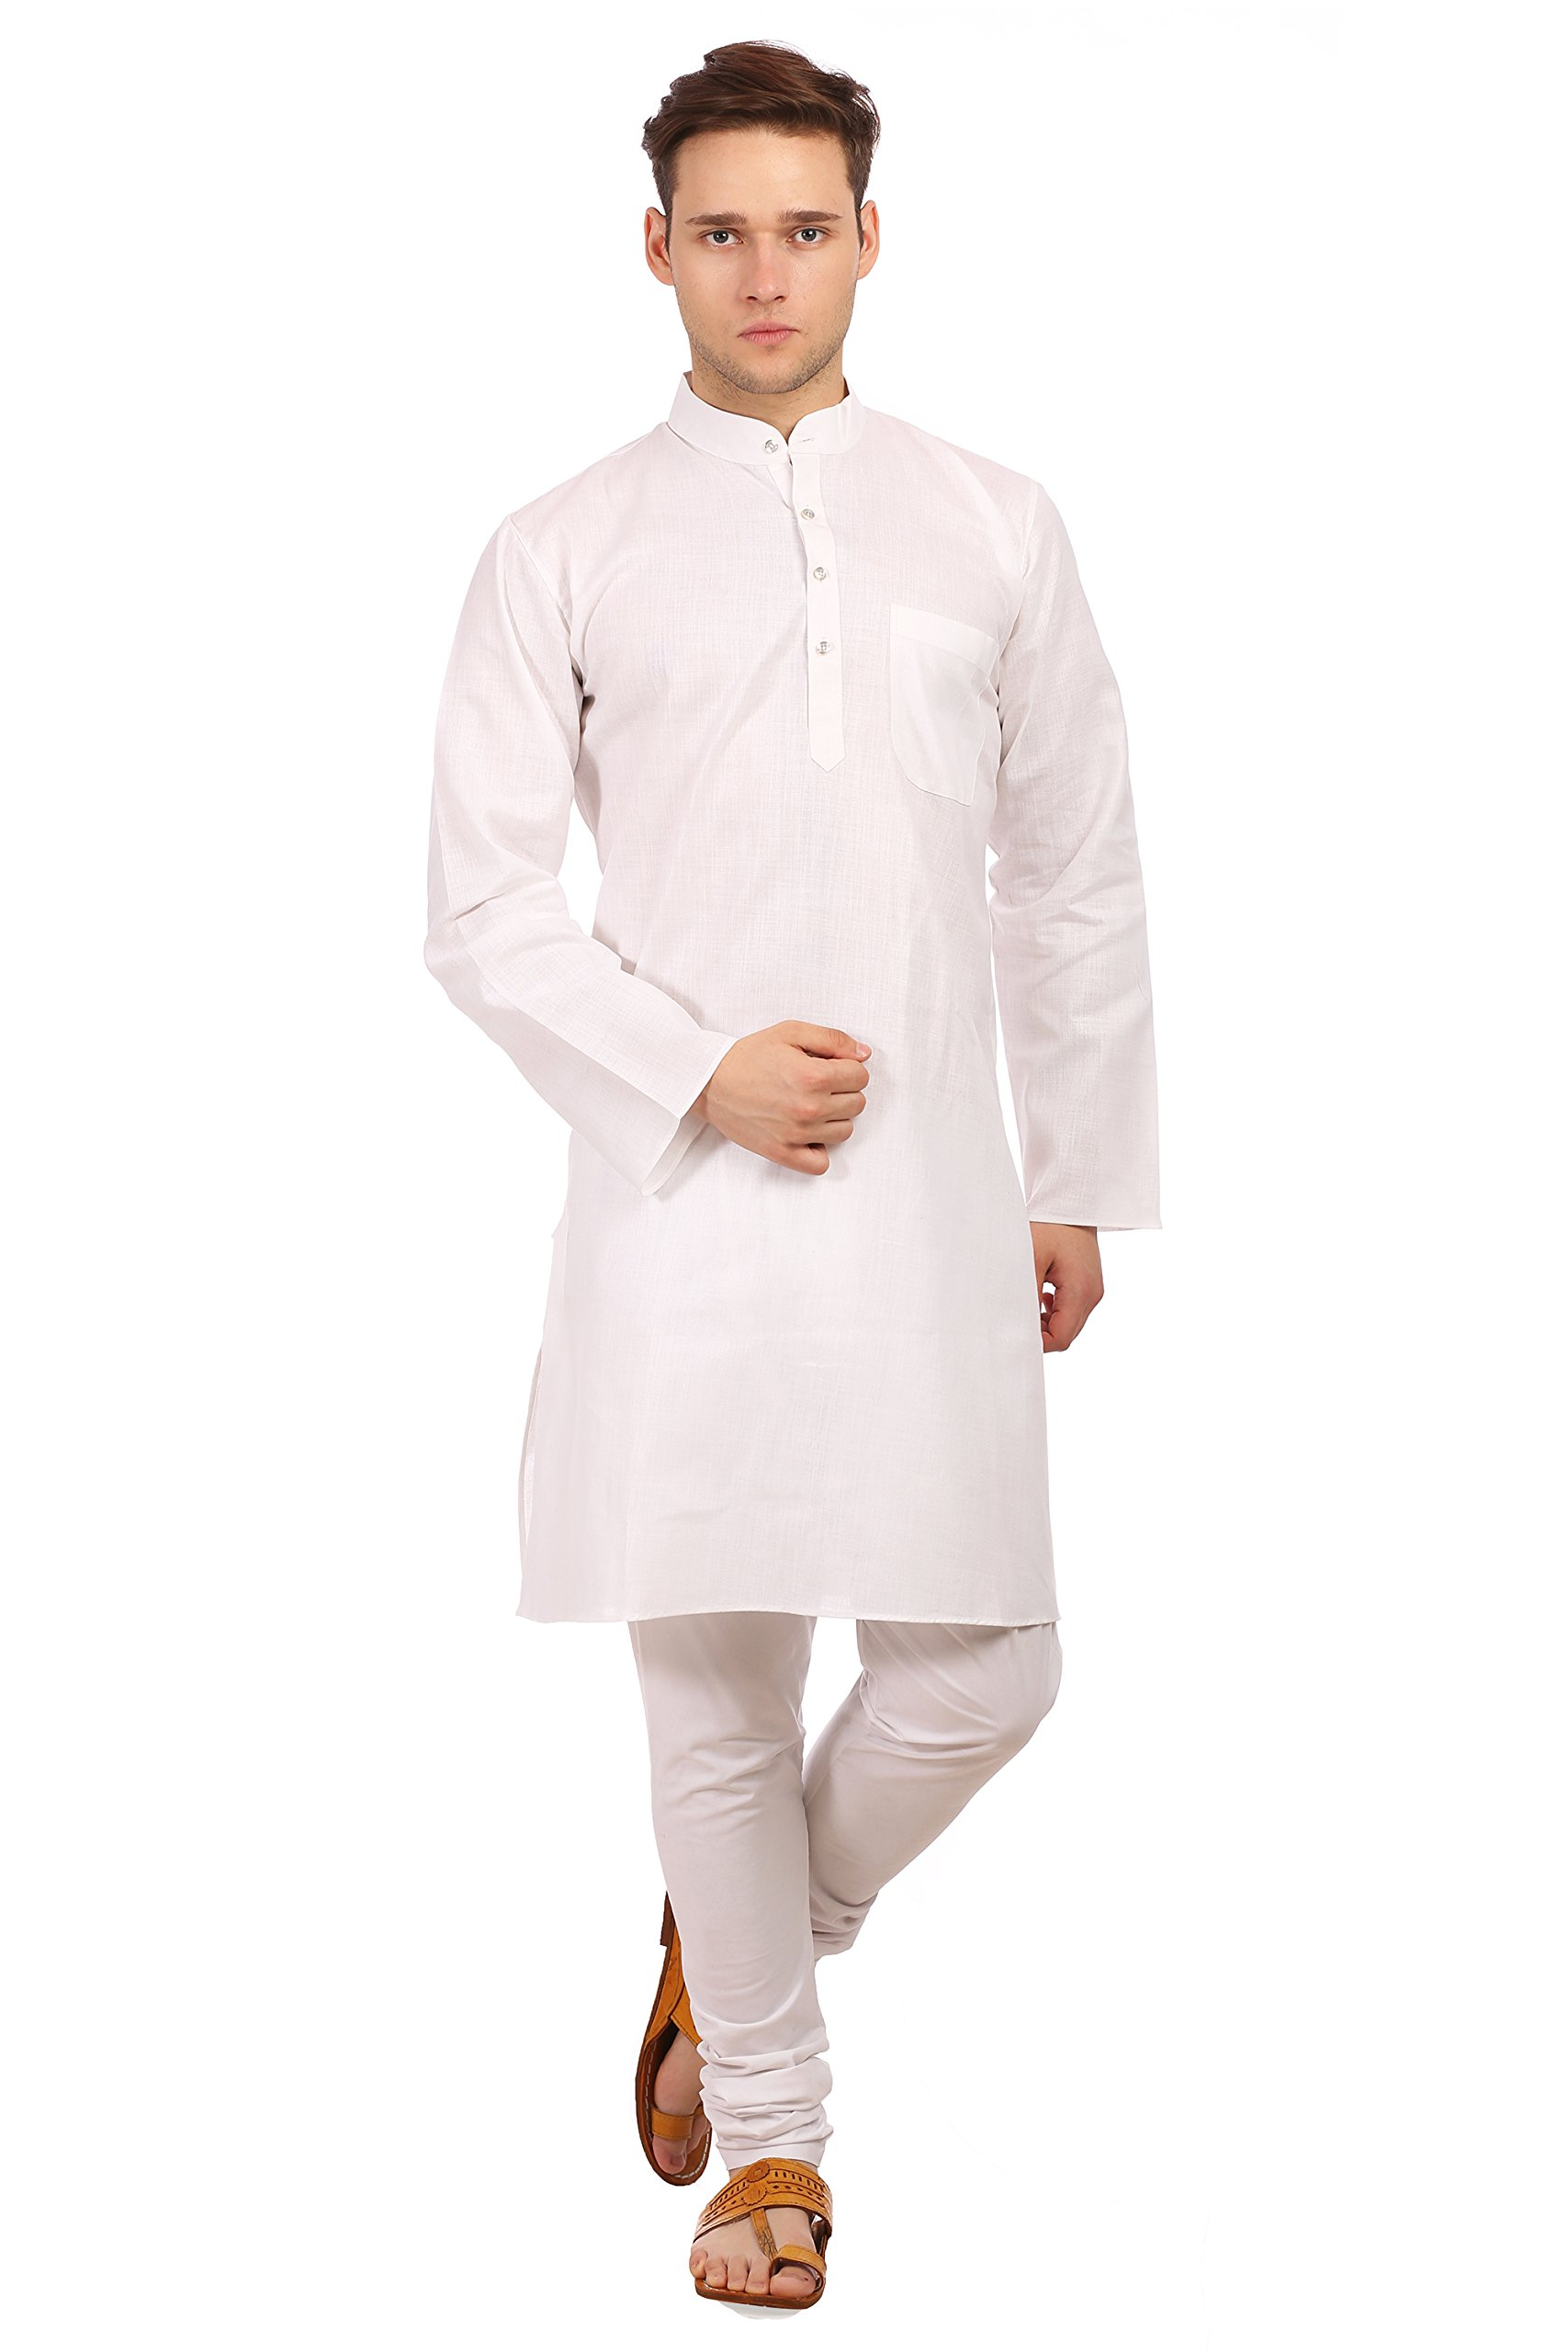 Wintage Men's Cotton Silk Festive and Casual White Kurta Pyjama